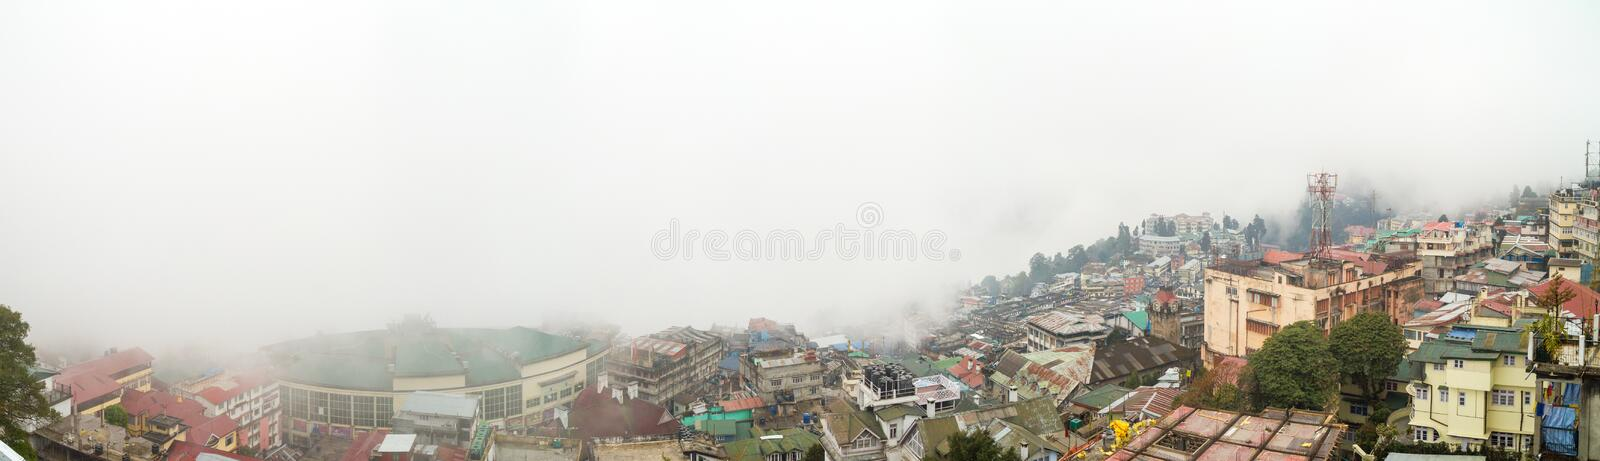 Panorama of Darjeeling city in East Bengal, India, and the surrounding mountains covered with thick fog stock images